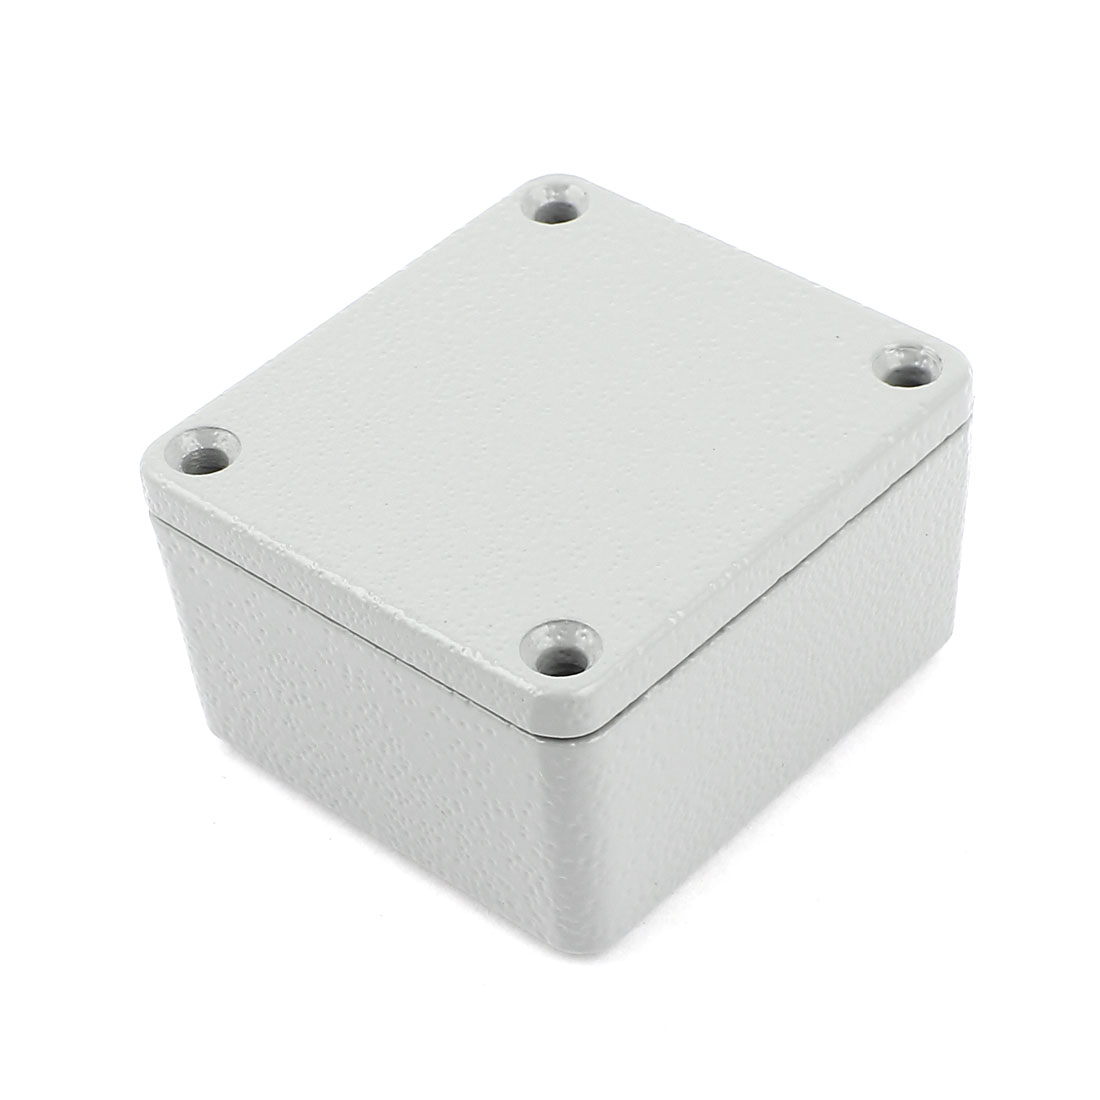 64mm x 58mm x 35mm Waterproof Aluminium Alloy Sealed Electrical Junction Box